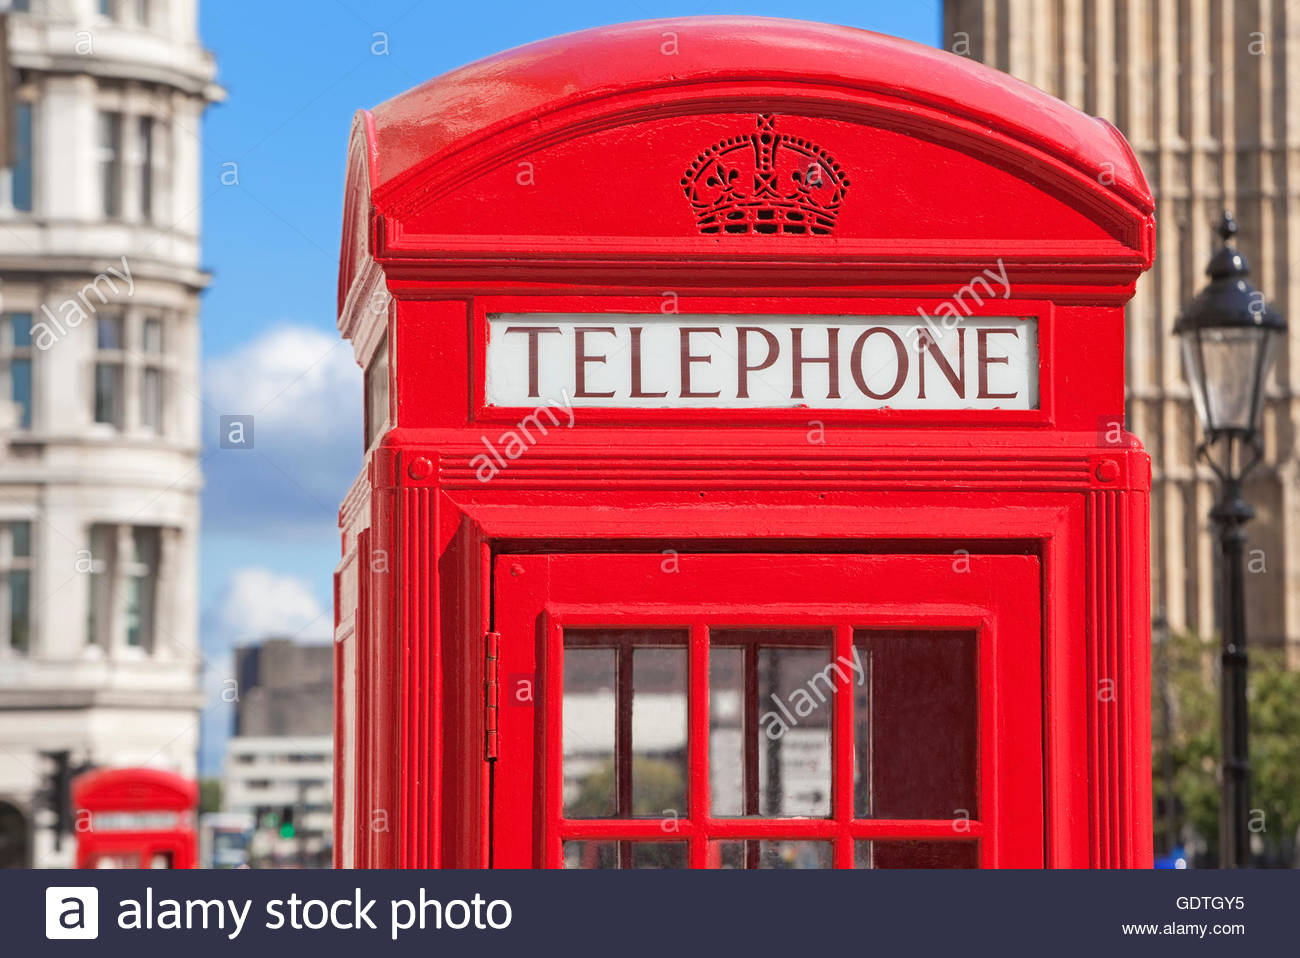 Red telephone boxes, London, U.K. - Stock Image